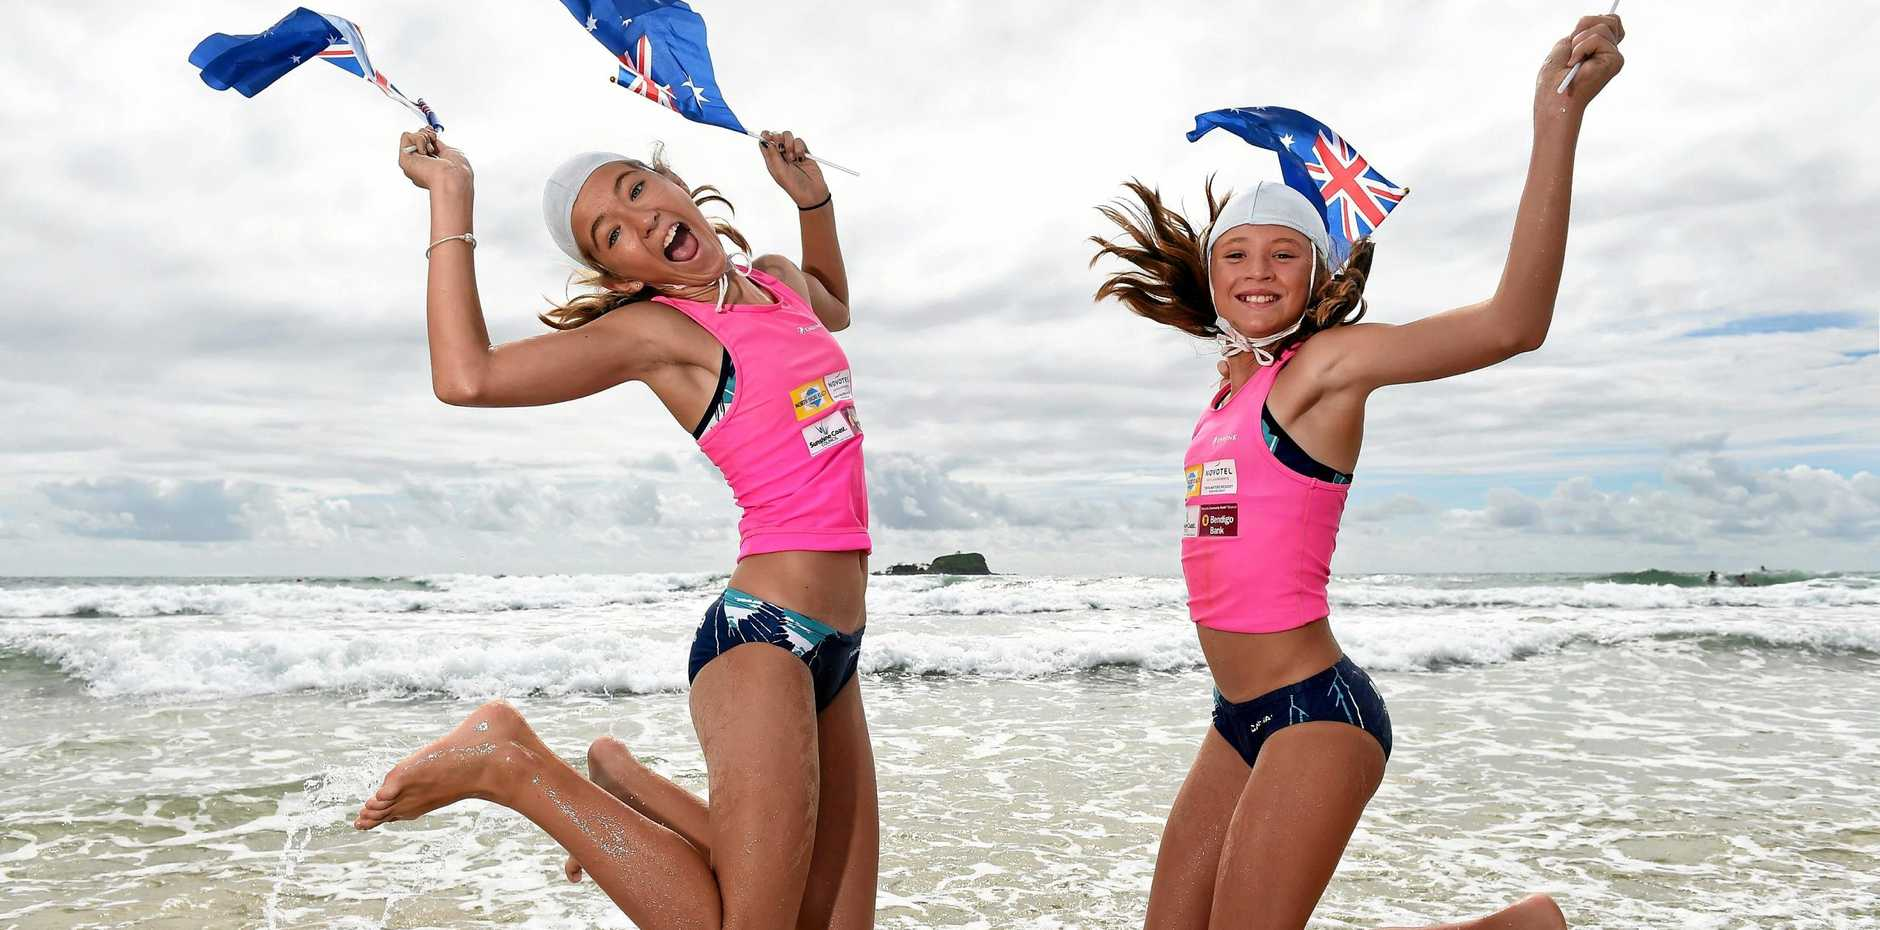 MAKING MEMORIES: Daily photography Patrick Woods snapped Mudjimba Beach nippers Alexandra Hansen and Holly Adams getting ready for Australia Day celebrations.